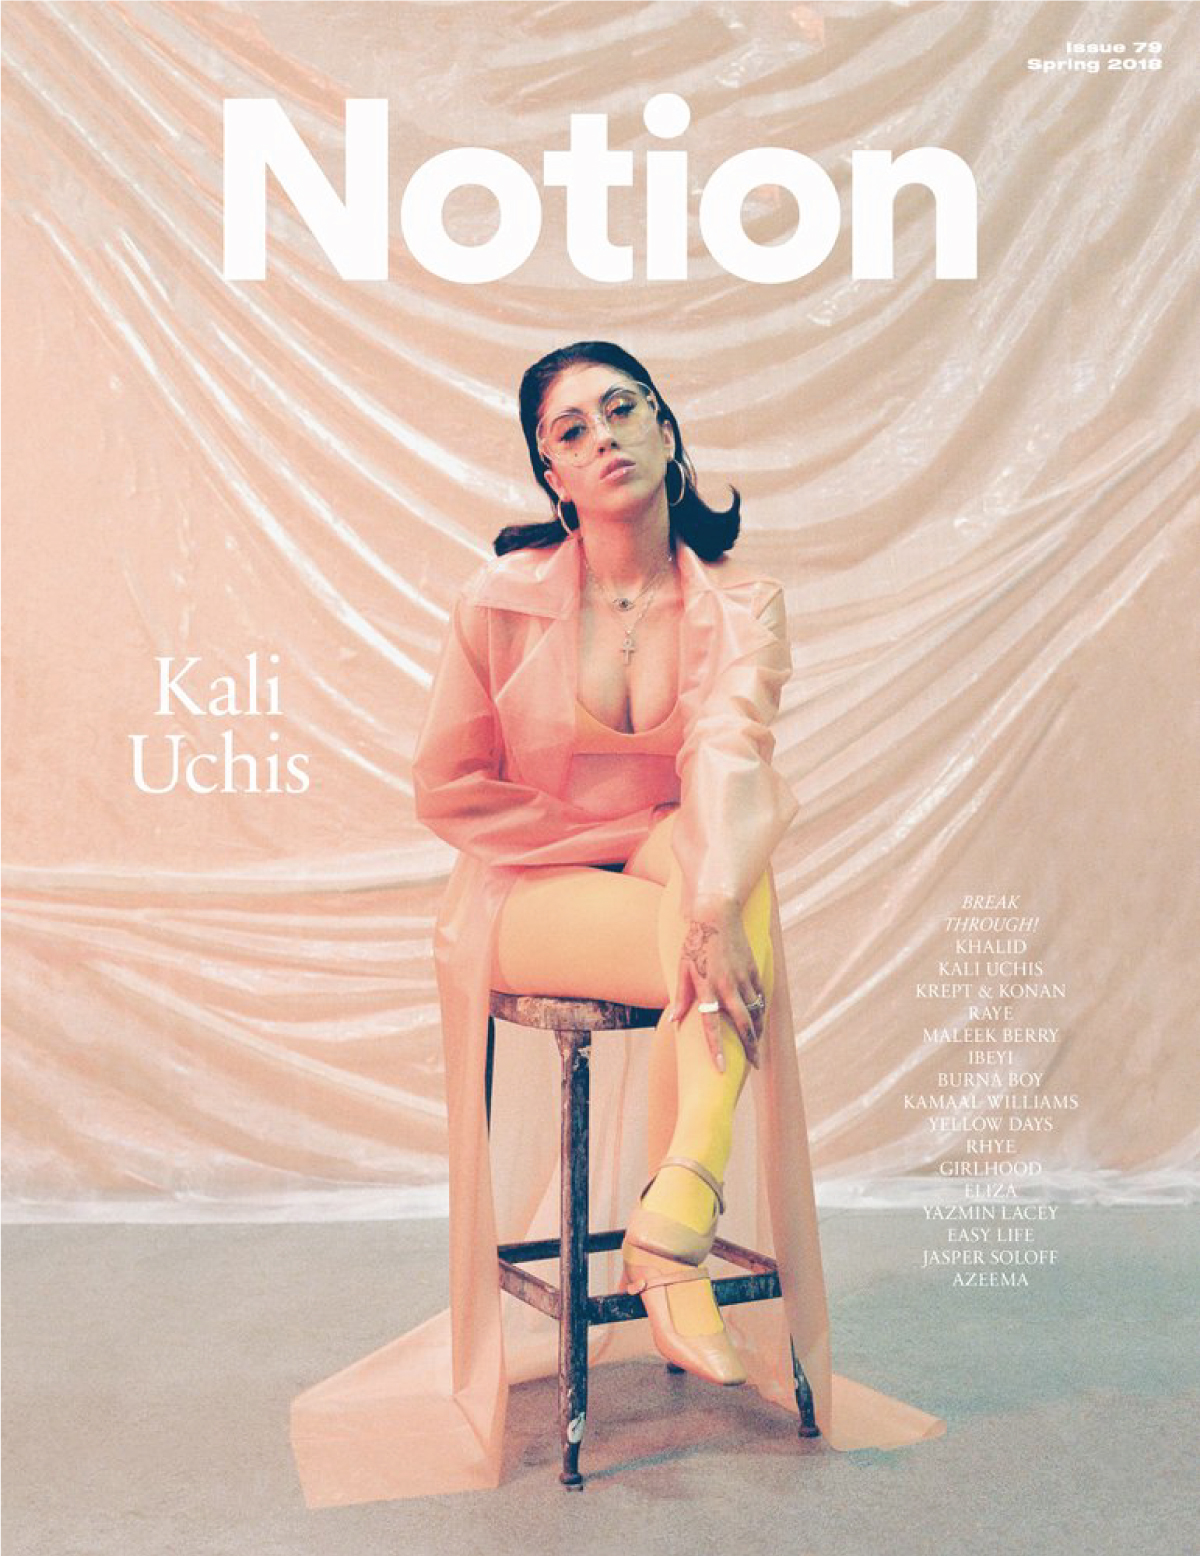 Singer Kali Uchis sitting on a chair with a pink background behind